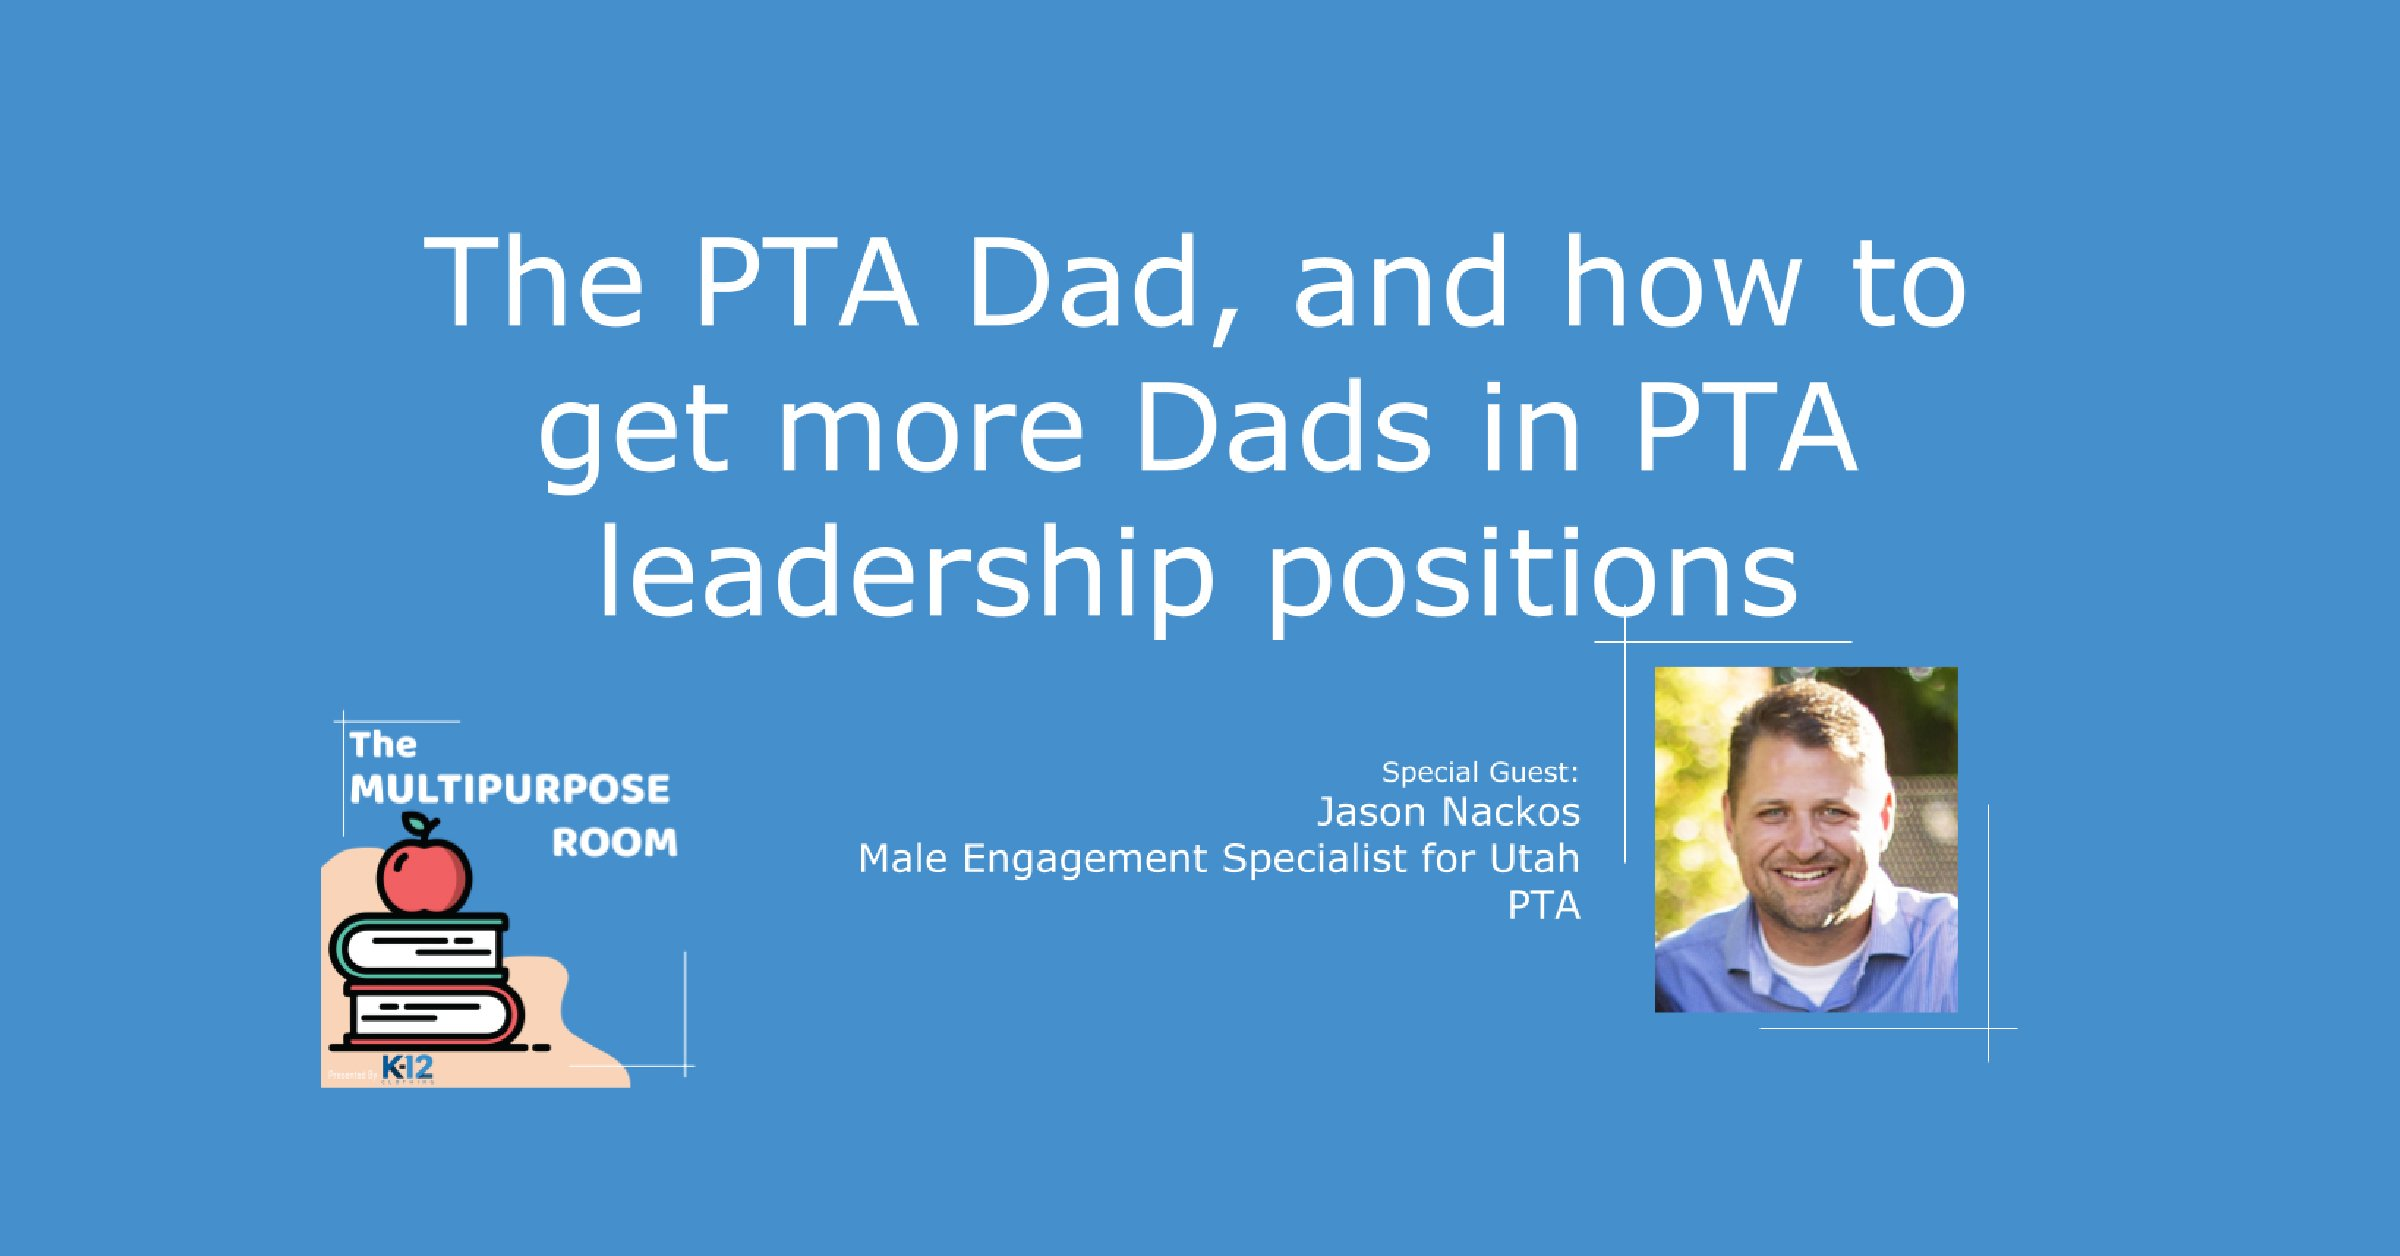 Getting Dad involved in the PTA